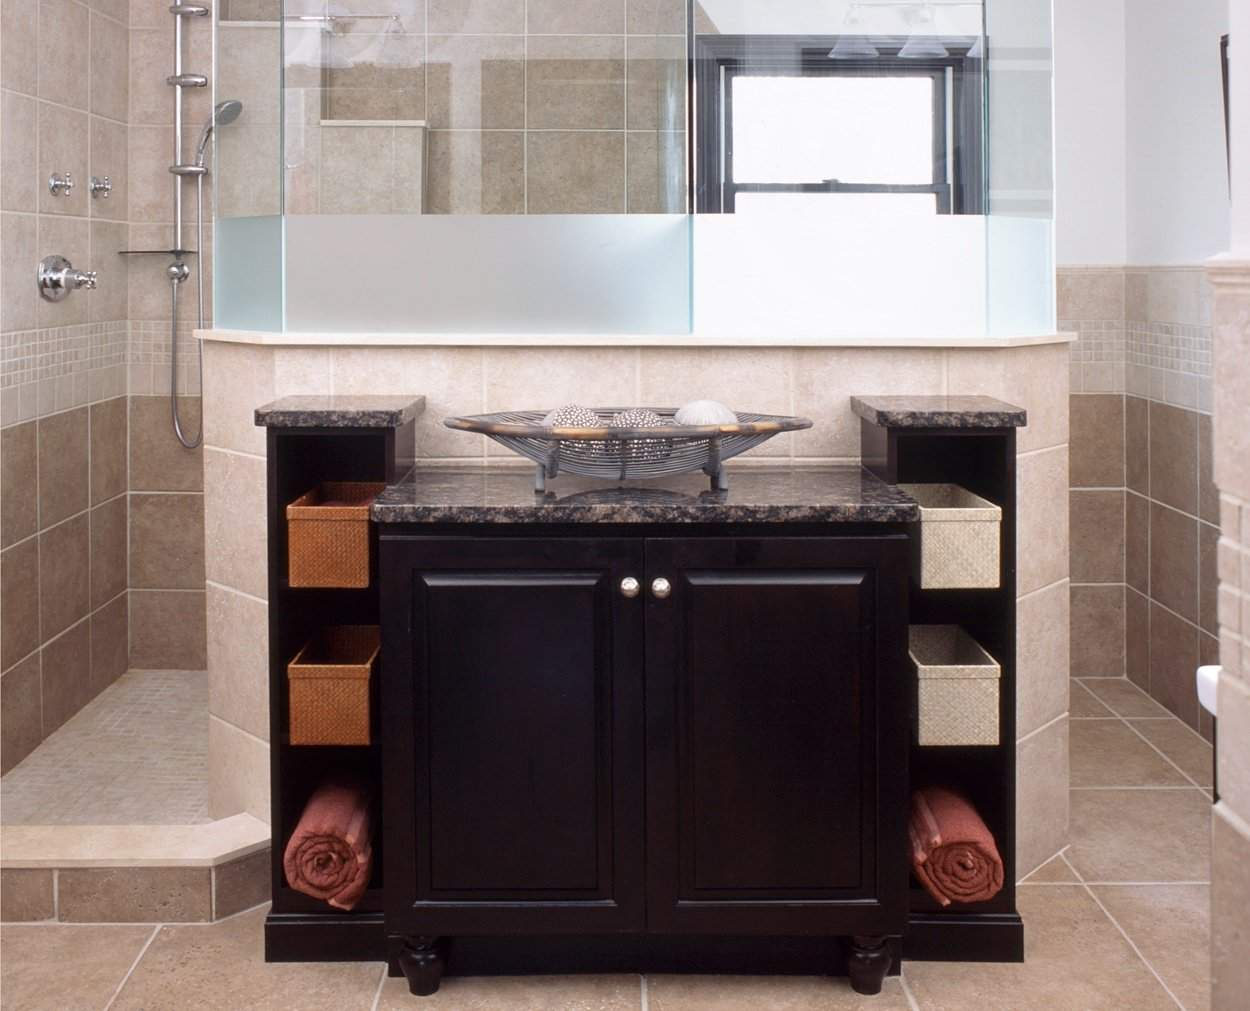 Back cabinetry with an asian feel, in Ridgefield CT master bath.